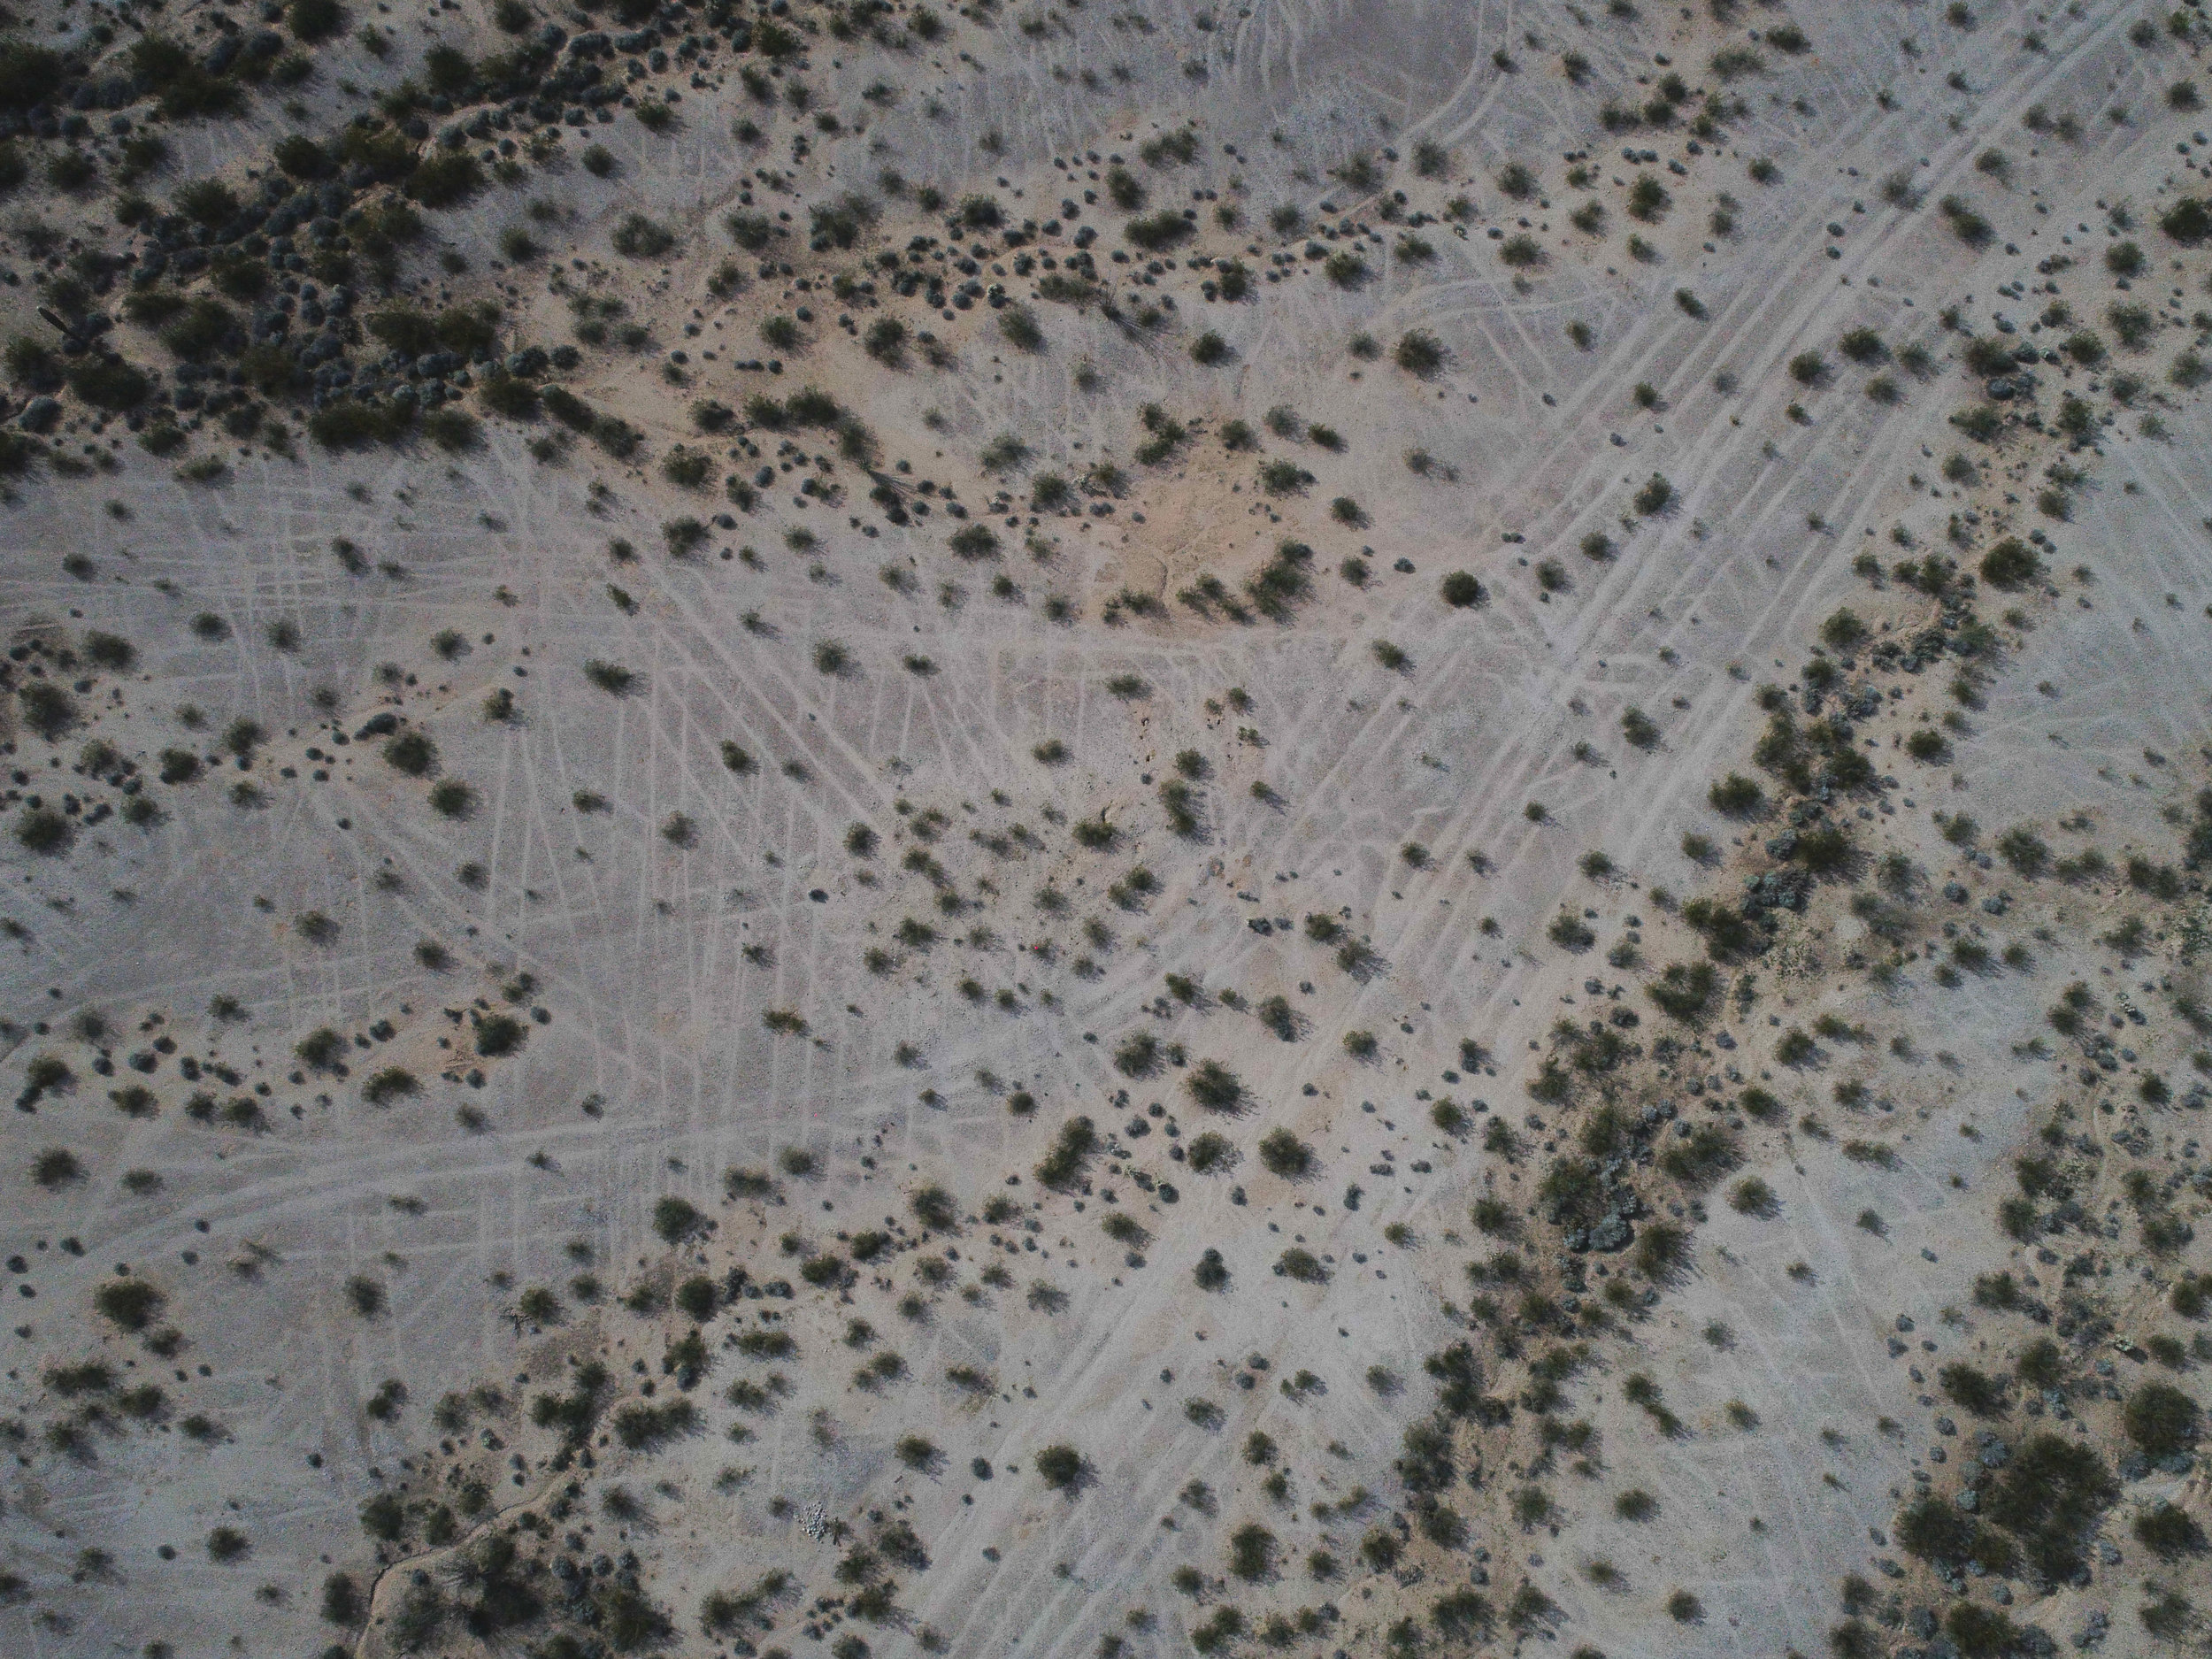 Tank tracks remain on the desert floor outside of camp, as seen from the air.